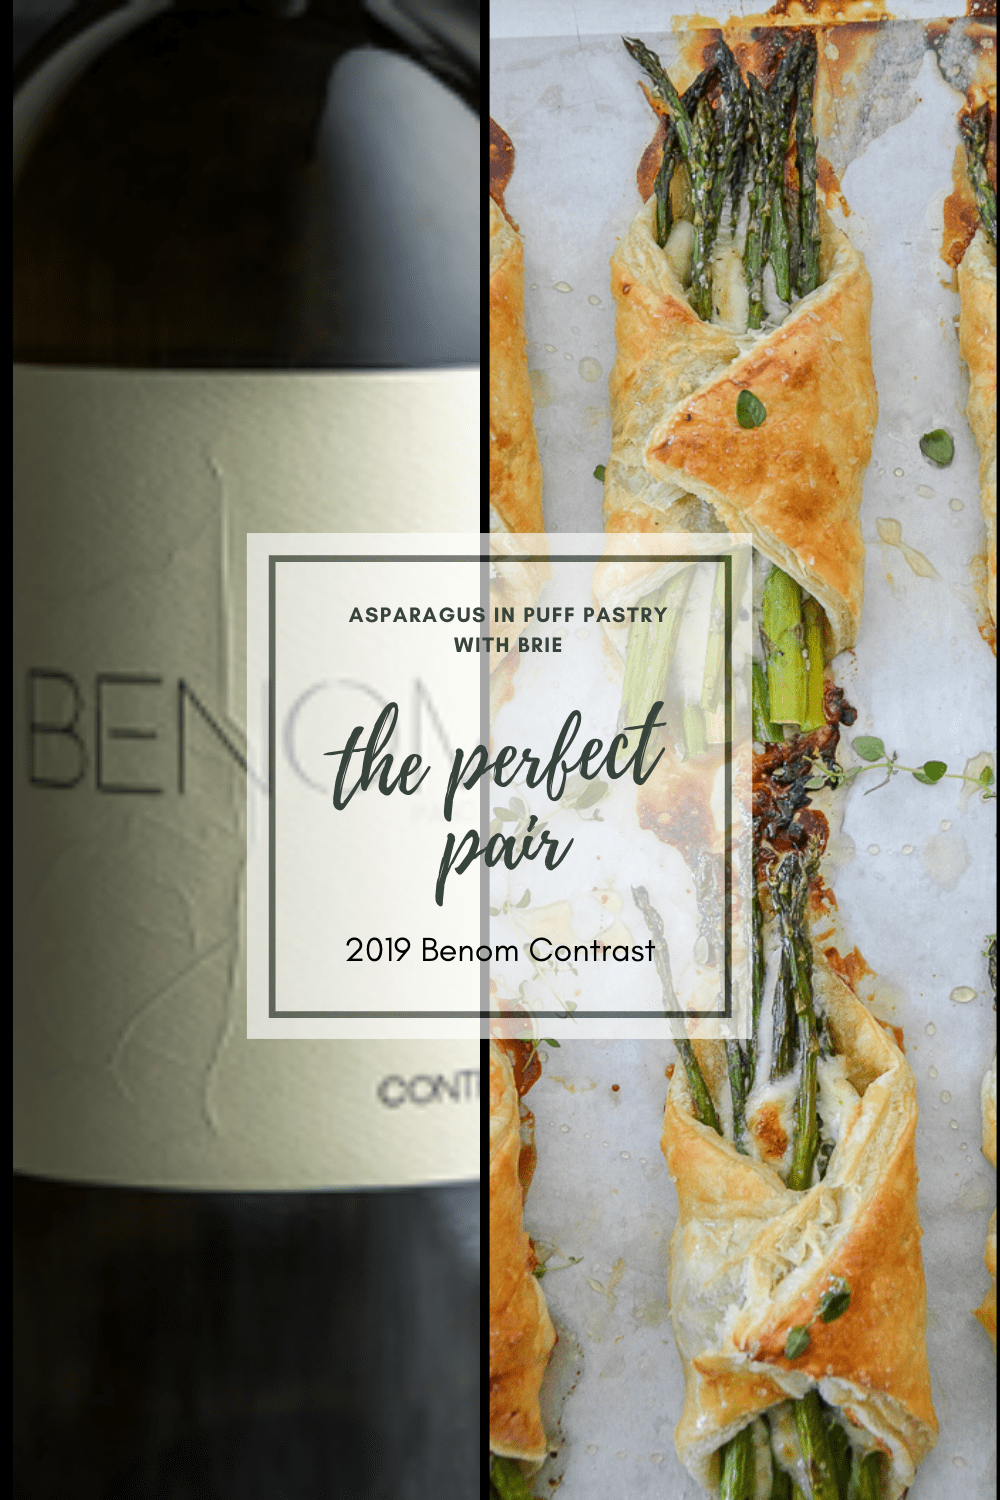 Benom Contrast and Asparagus In Puff Pastry with Brie